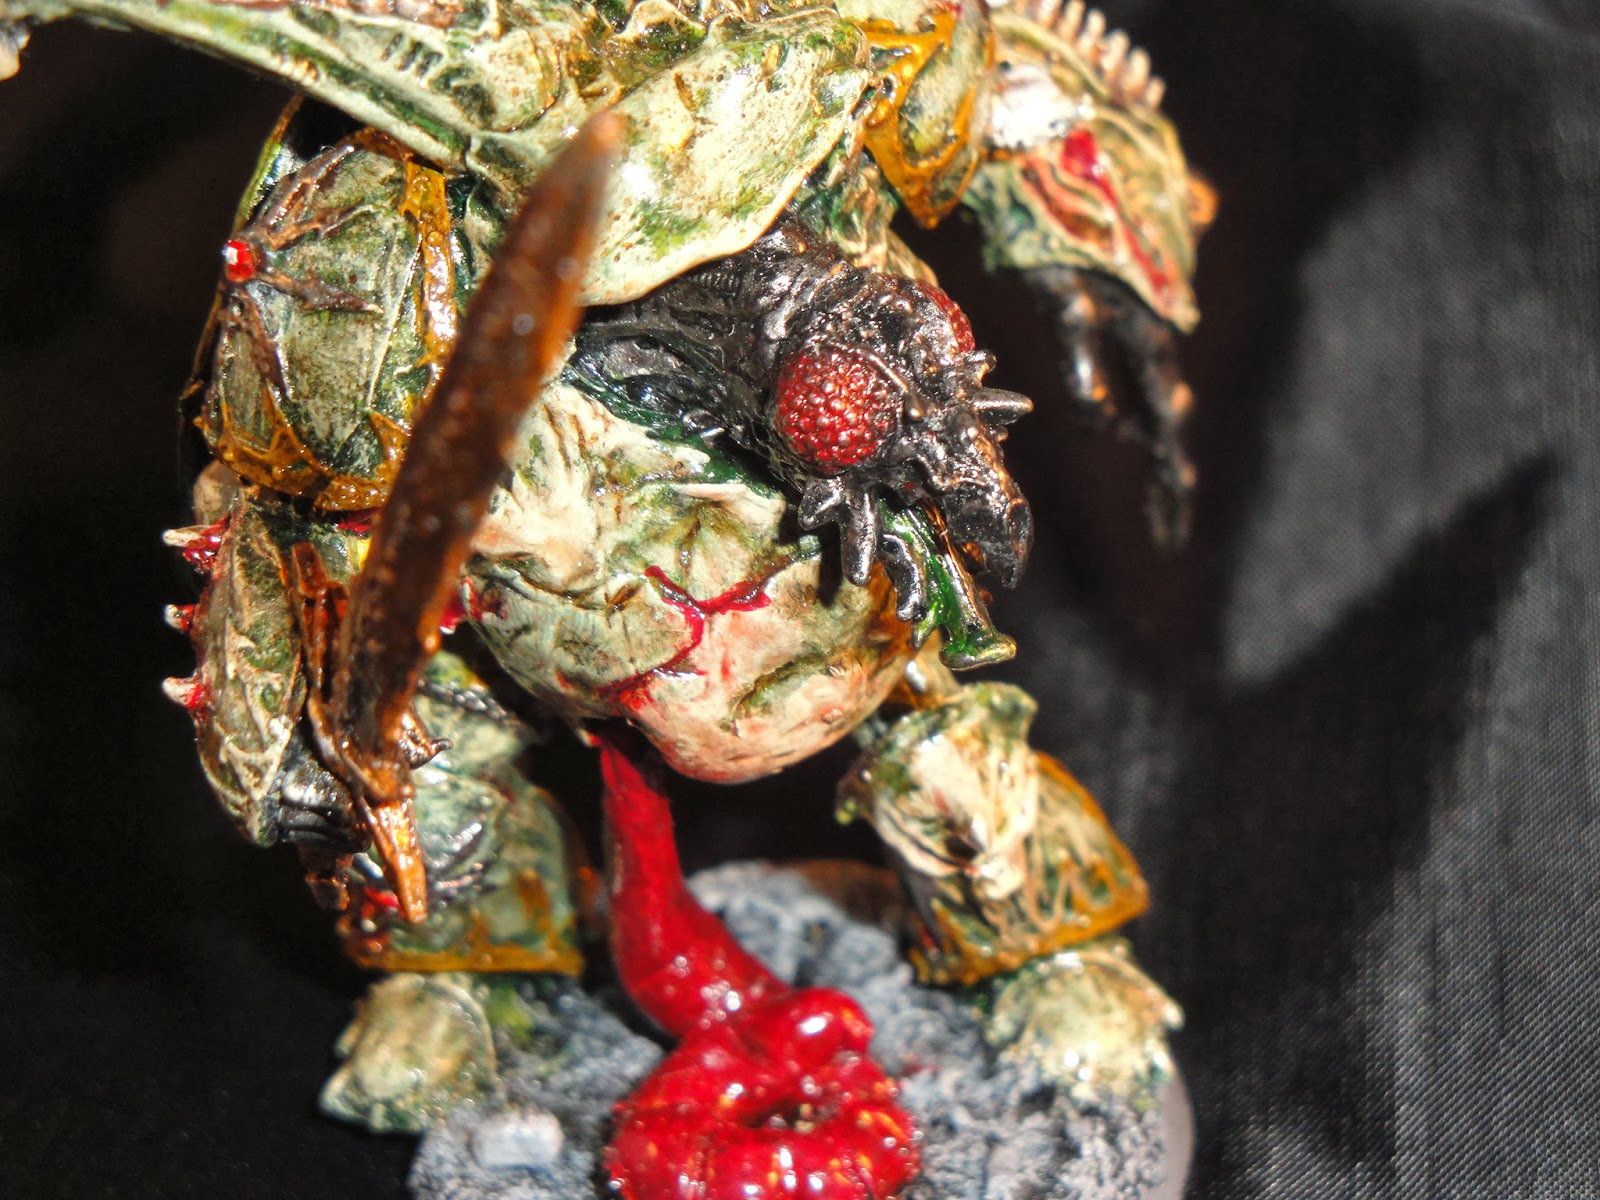 Chaos corner the lord of the flies daemon prince of nurgle